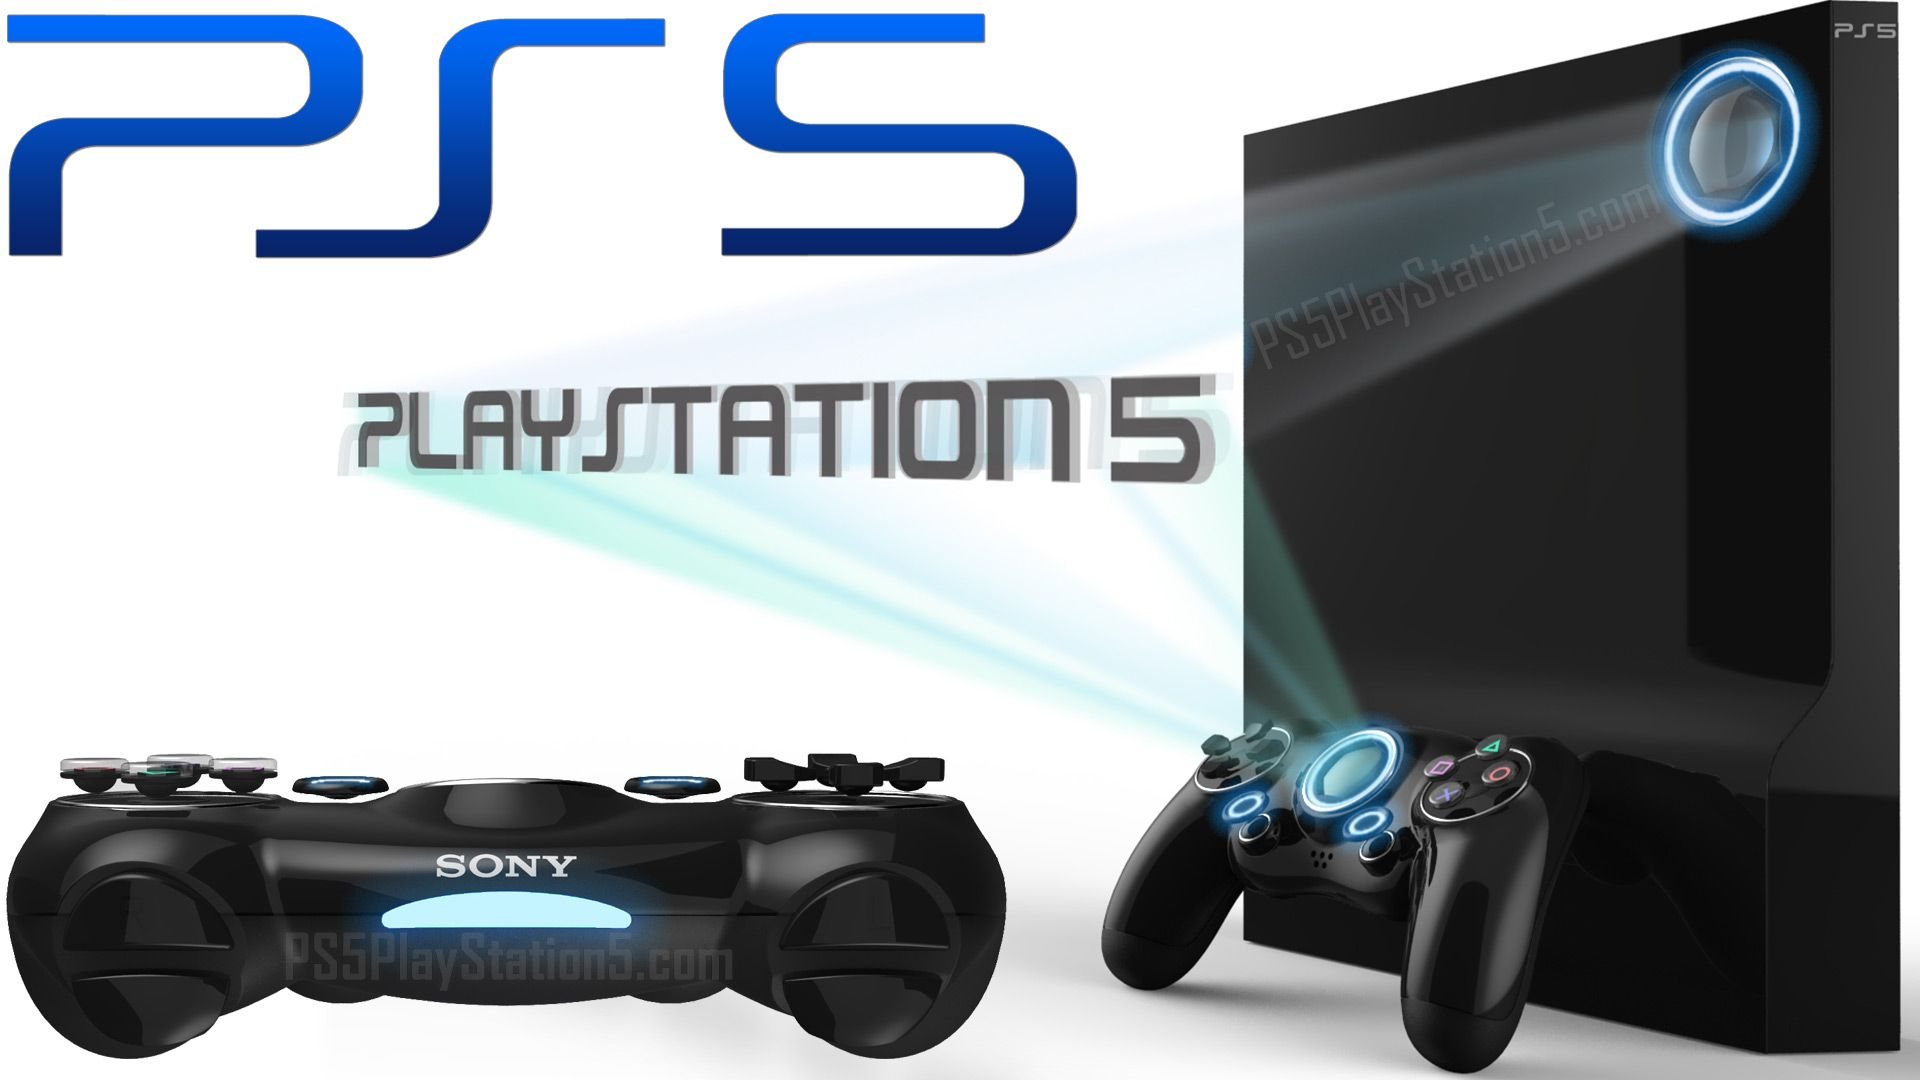 Ps5 And Dualshock 5 Playstation 5 Playstation Dualshock